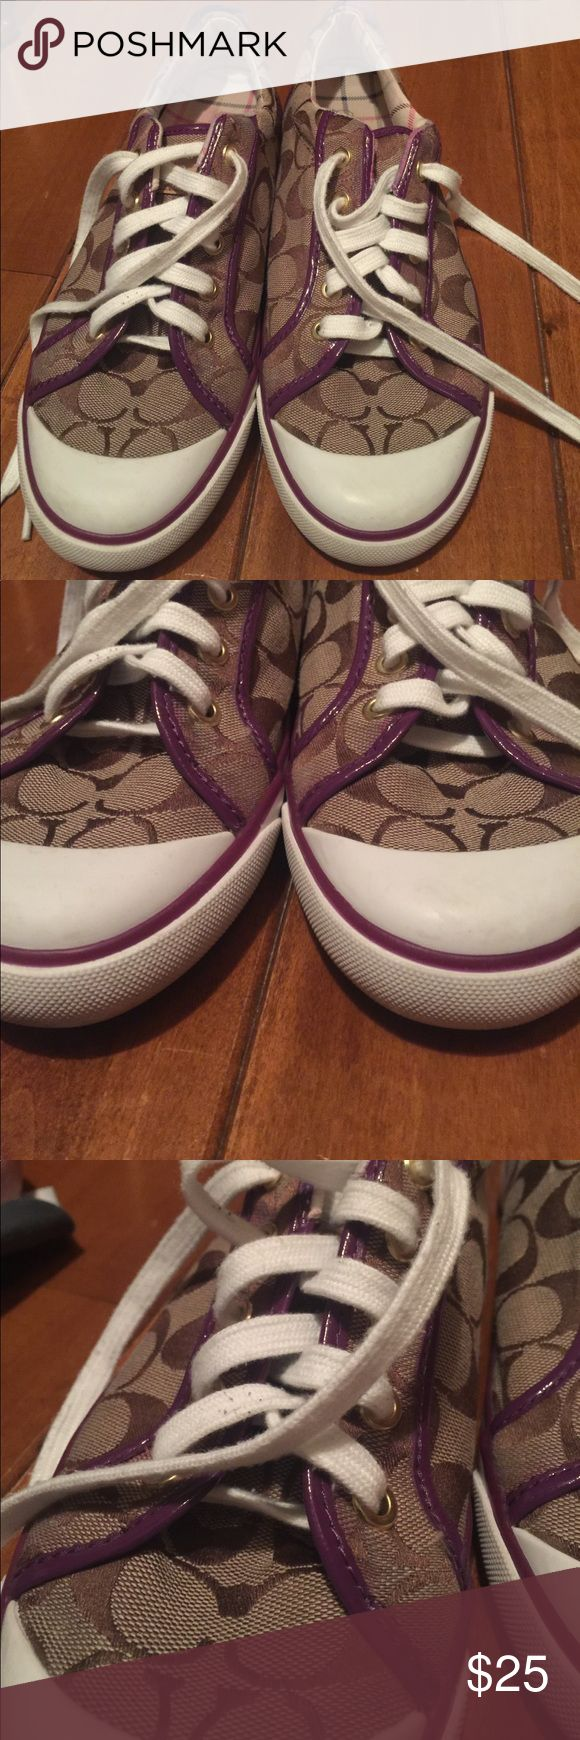 Coach tennis shoes 9.5 Barrett Good overall condition. These shoes have been worn but in good condition.as you can see in the pictures, there is some rub off from the purple patent leather. Clean and from a smoke free home. Coach Shoes Sneakers